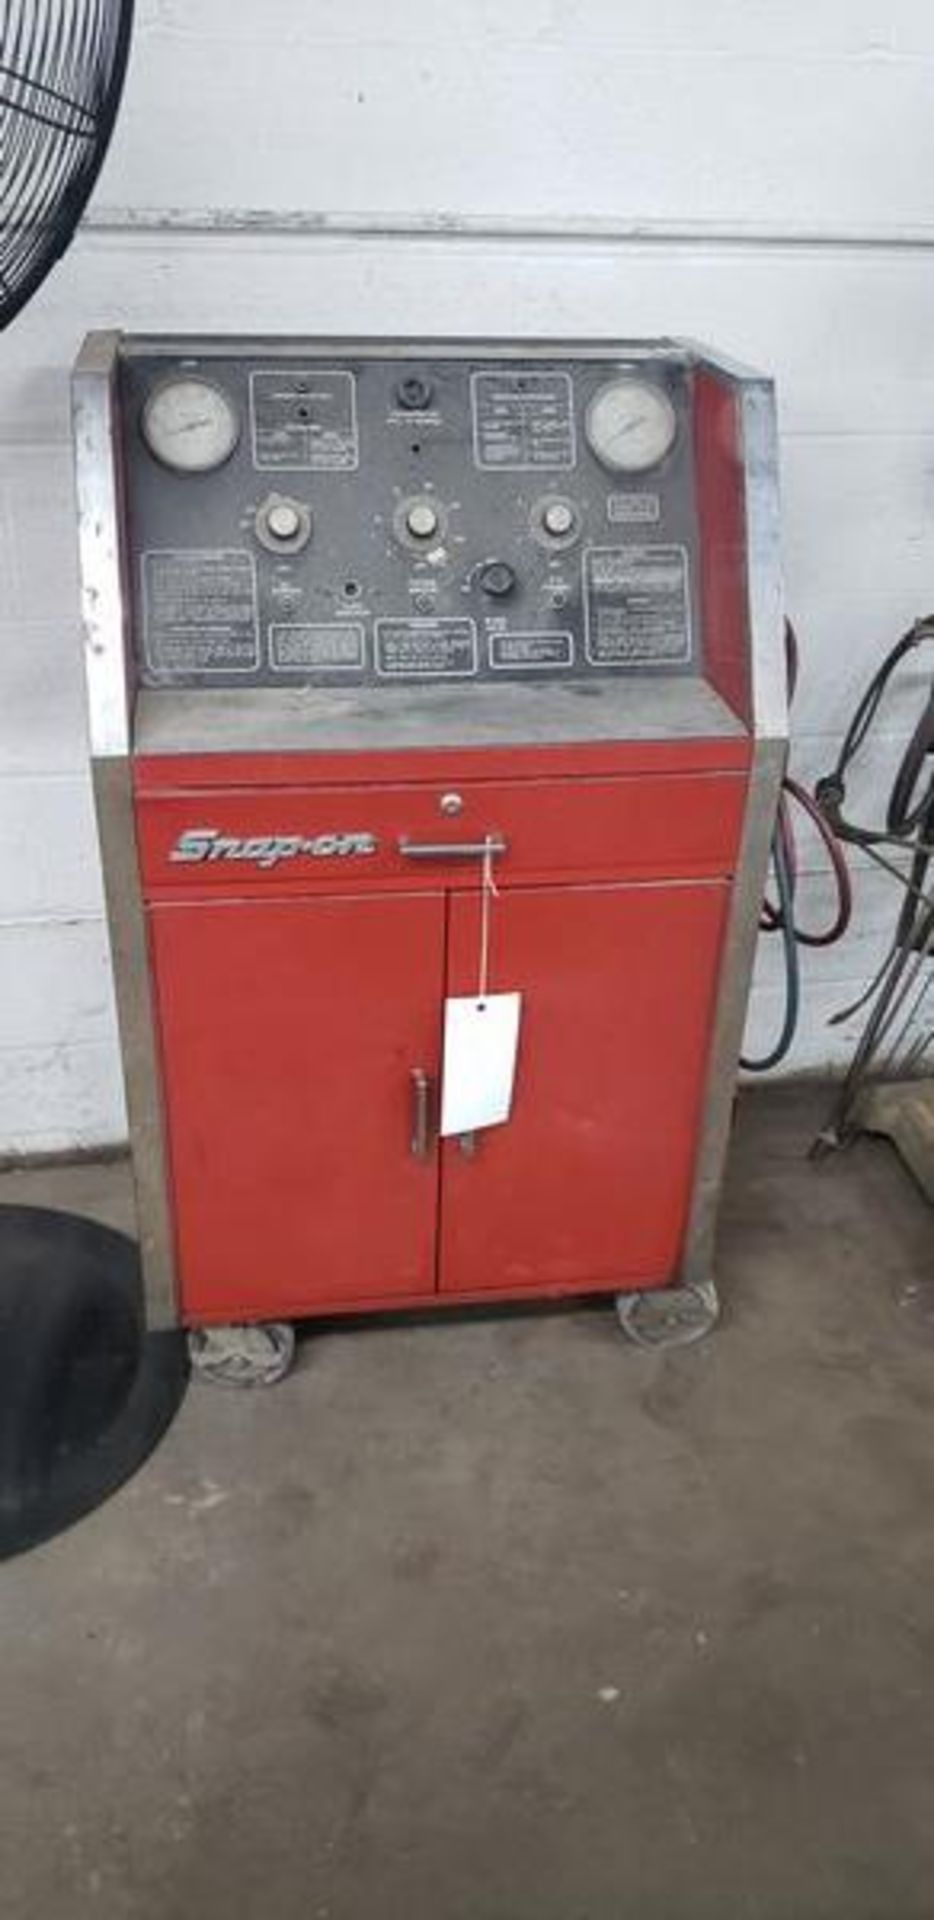 SNAP ON ACT2000 REFRIGERANT RECYCLING RECOVERY SYSTEM PLUS CONTENTS OF CABINET